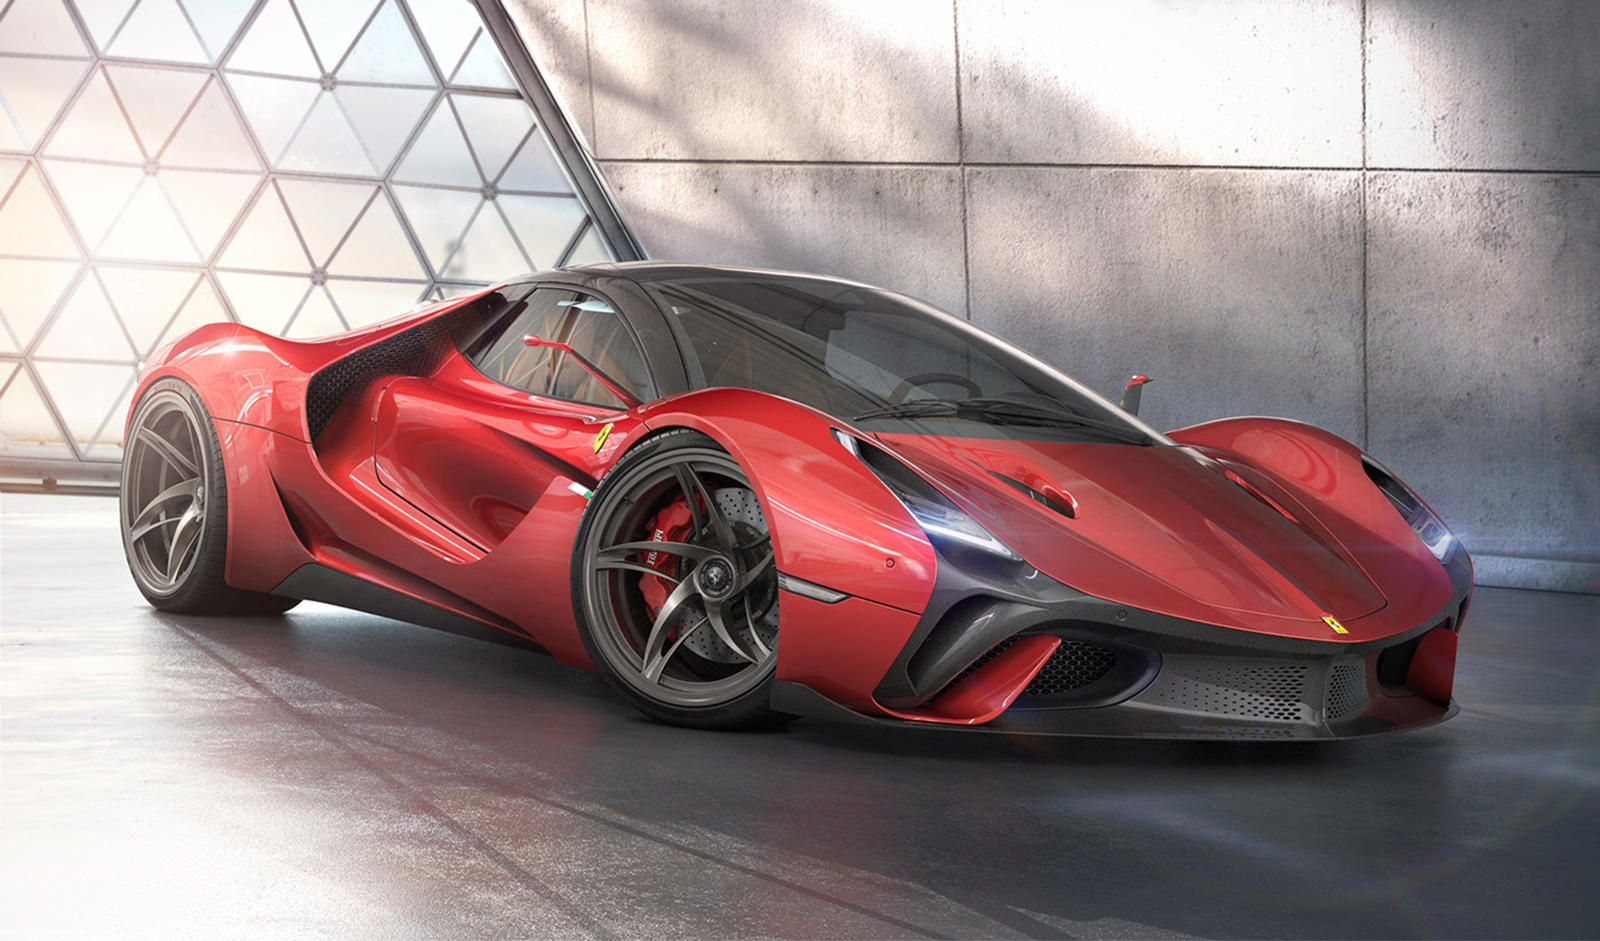 This Is What Ferrari S Next Flagship Hypercar Should Look Like Enzo Ferrari Would Doubtless Approve Of The Stallone In 2020 Ferrari Super Cars Ferrari F40